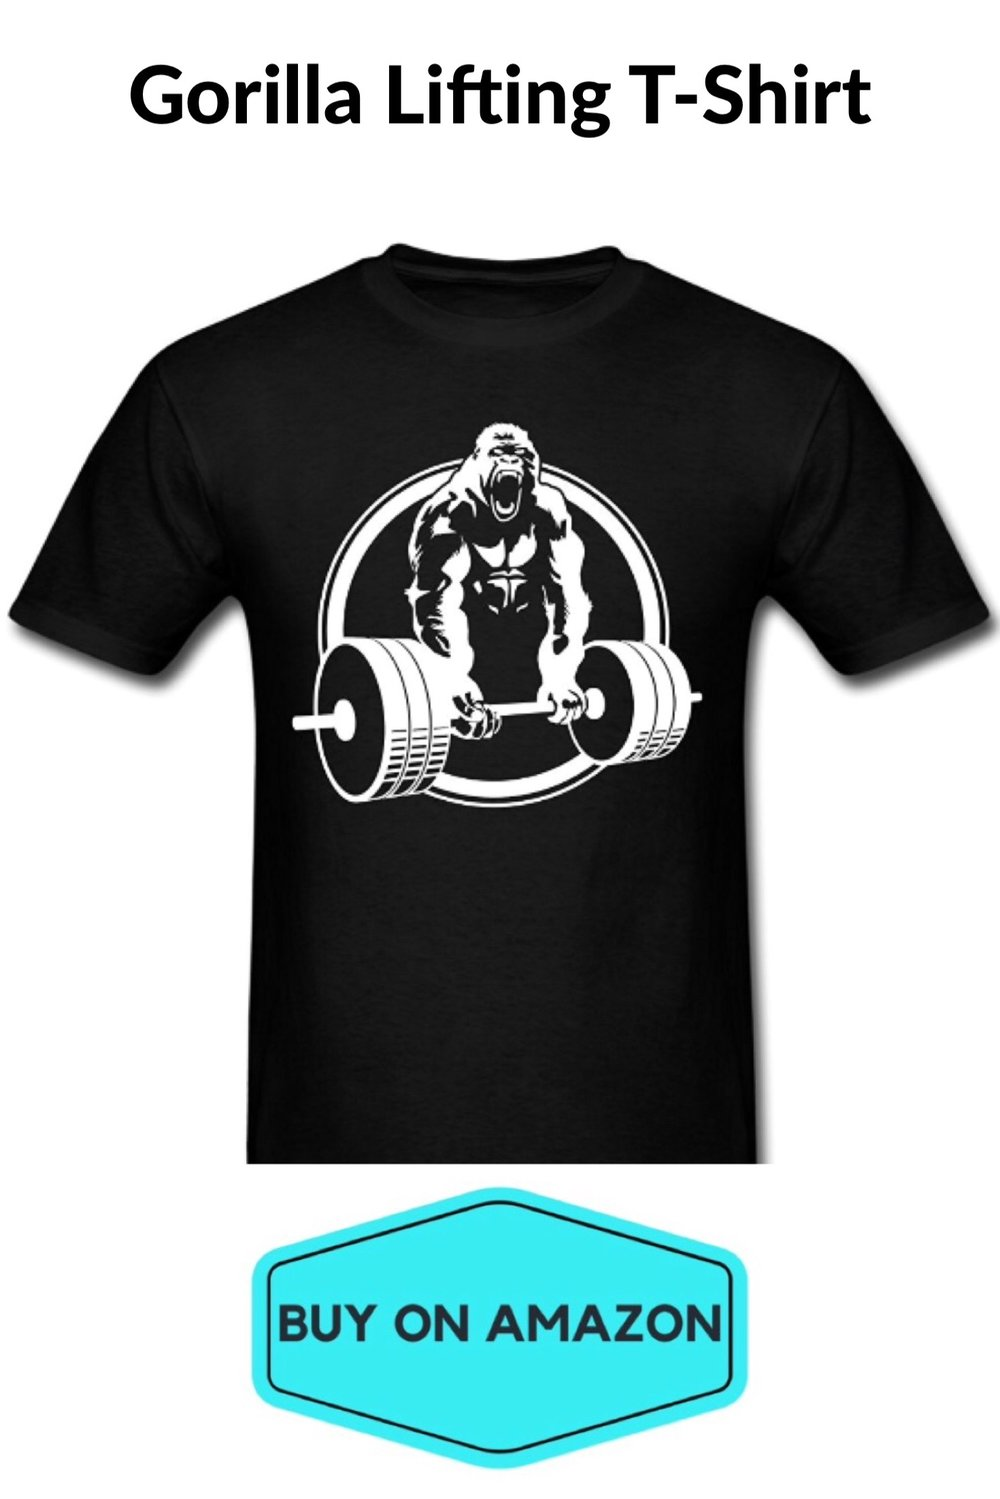 Gorilla Lifting T-Shirt